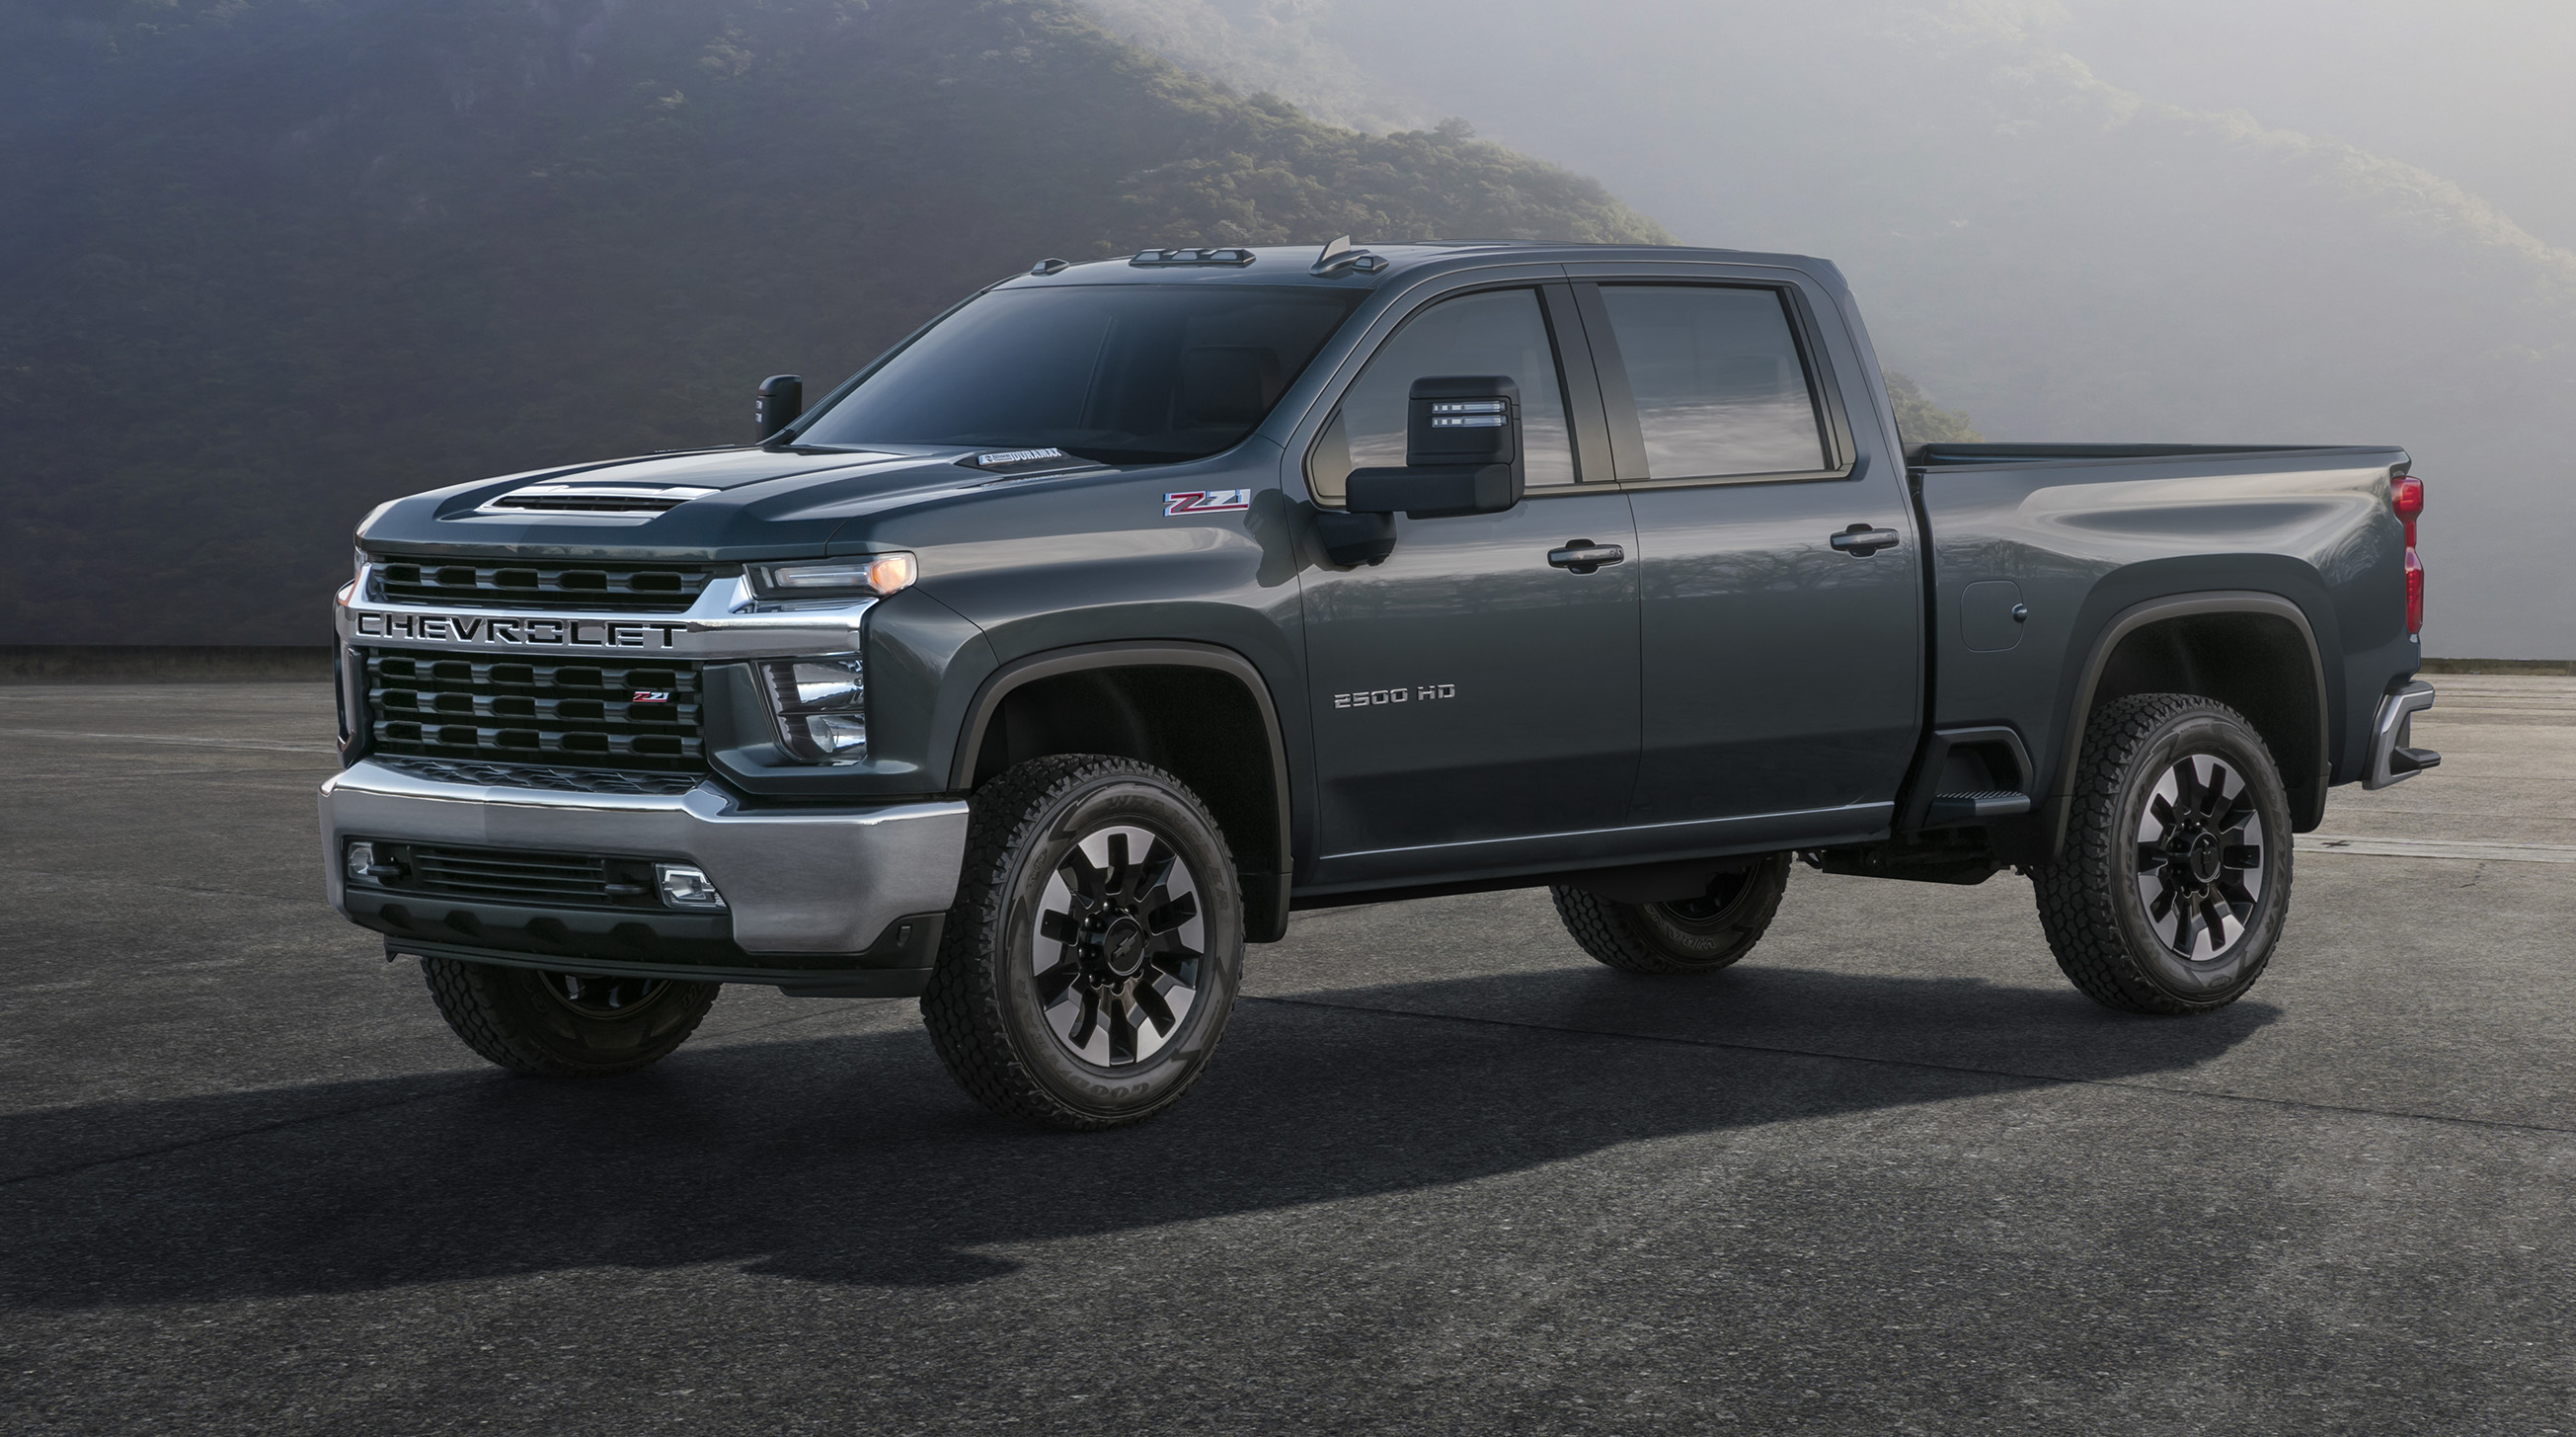 90 A 2020 Chevy Silverado Hd Price and Review